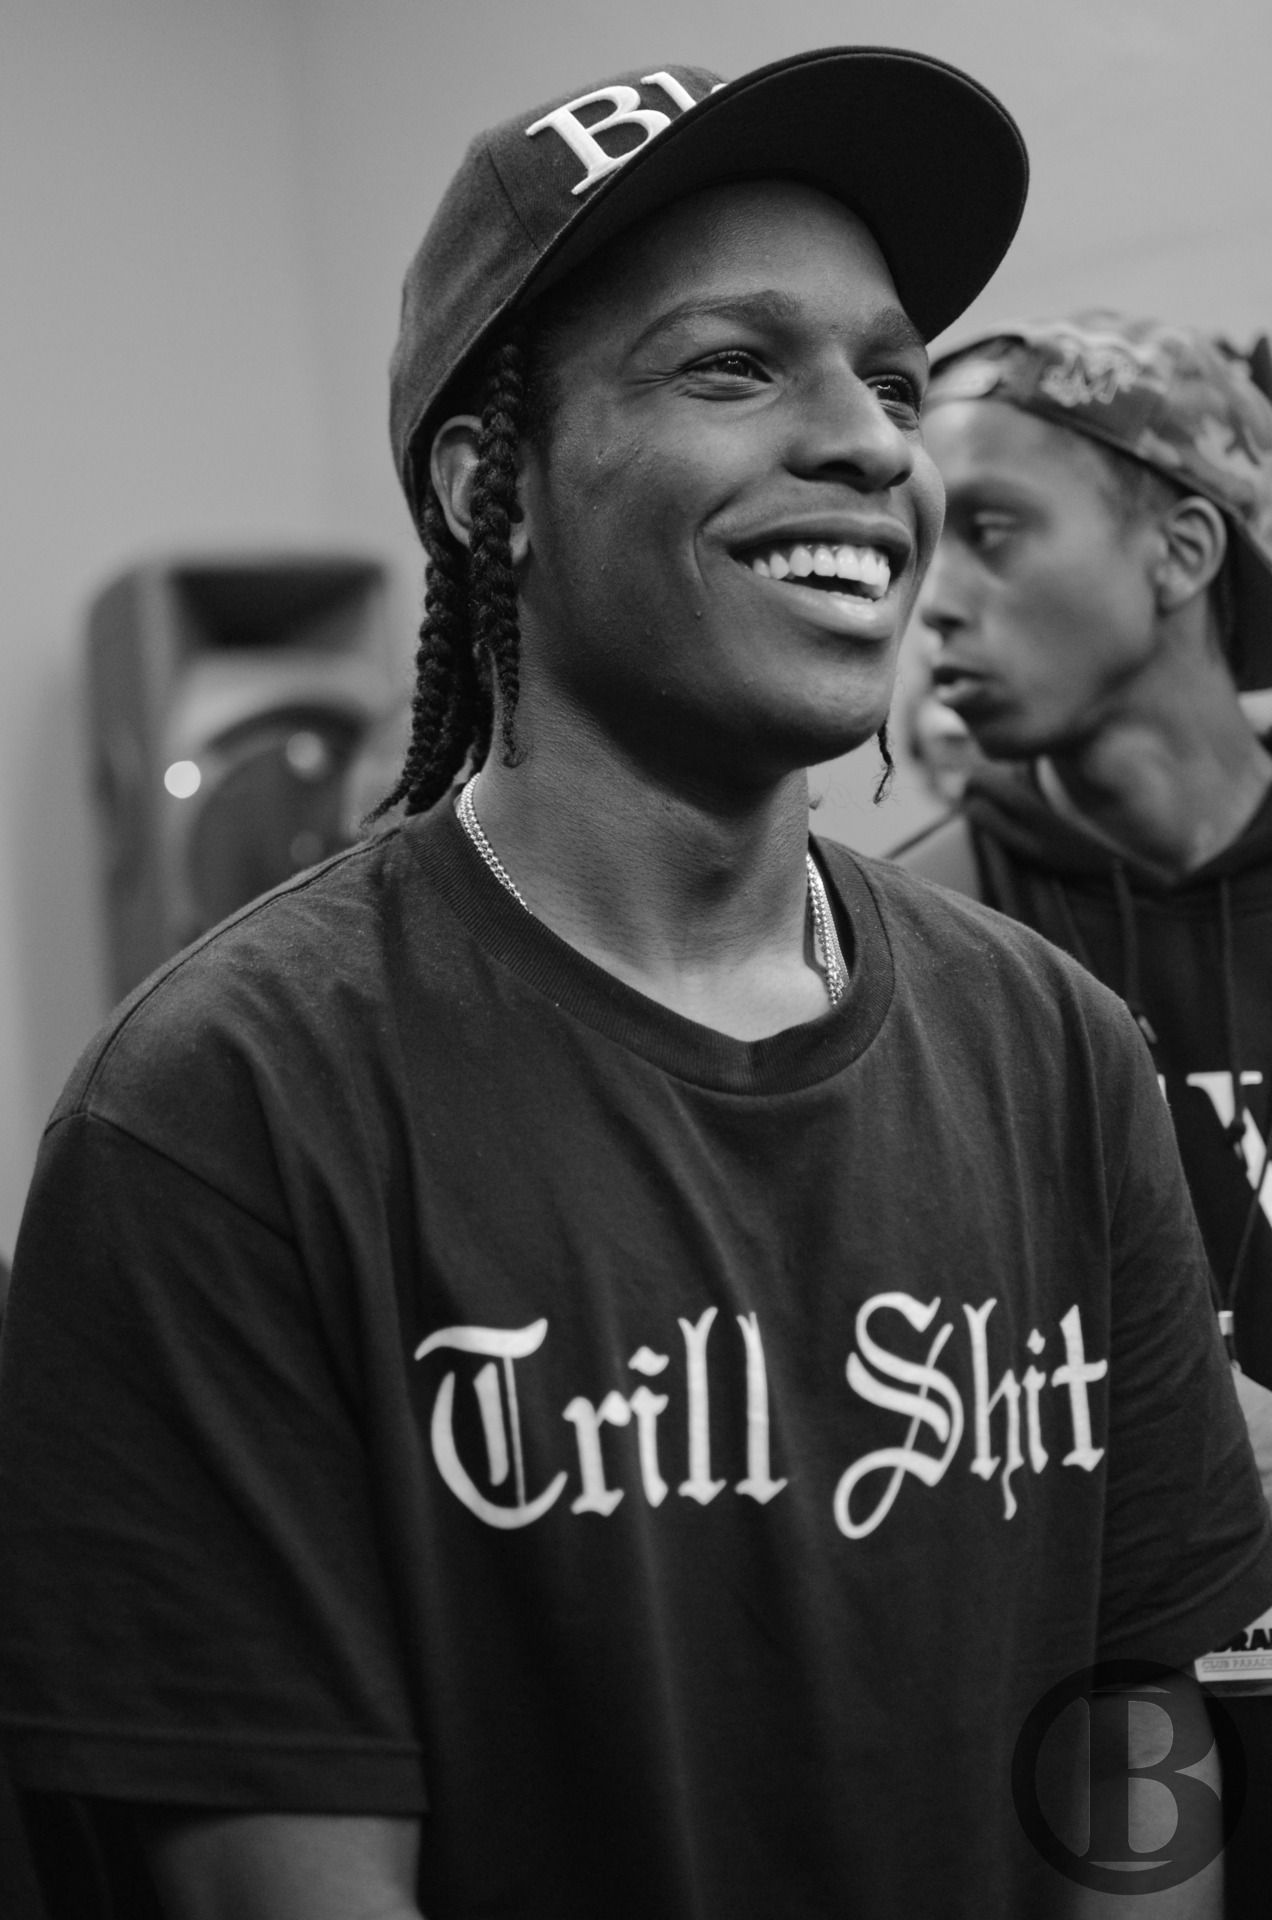 Trill Shit. Asap rocky wallpaper, Aap rocky, Asap rocky